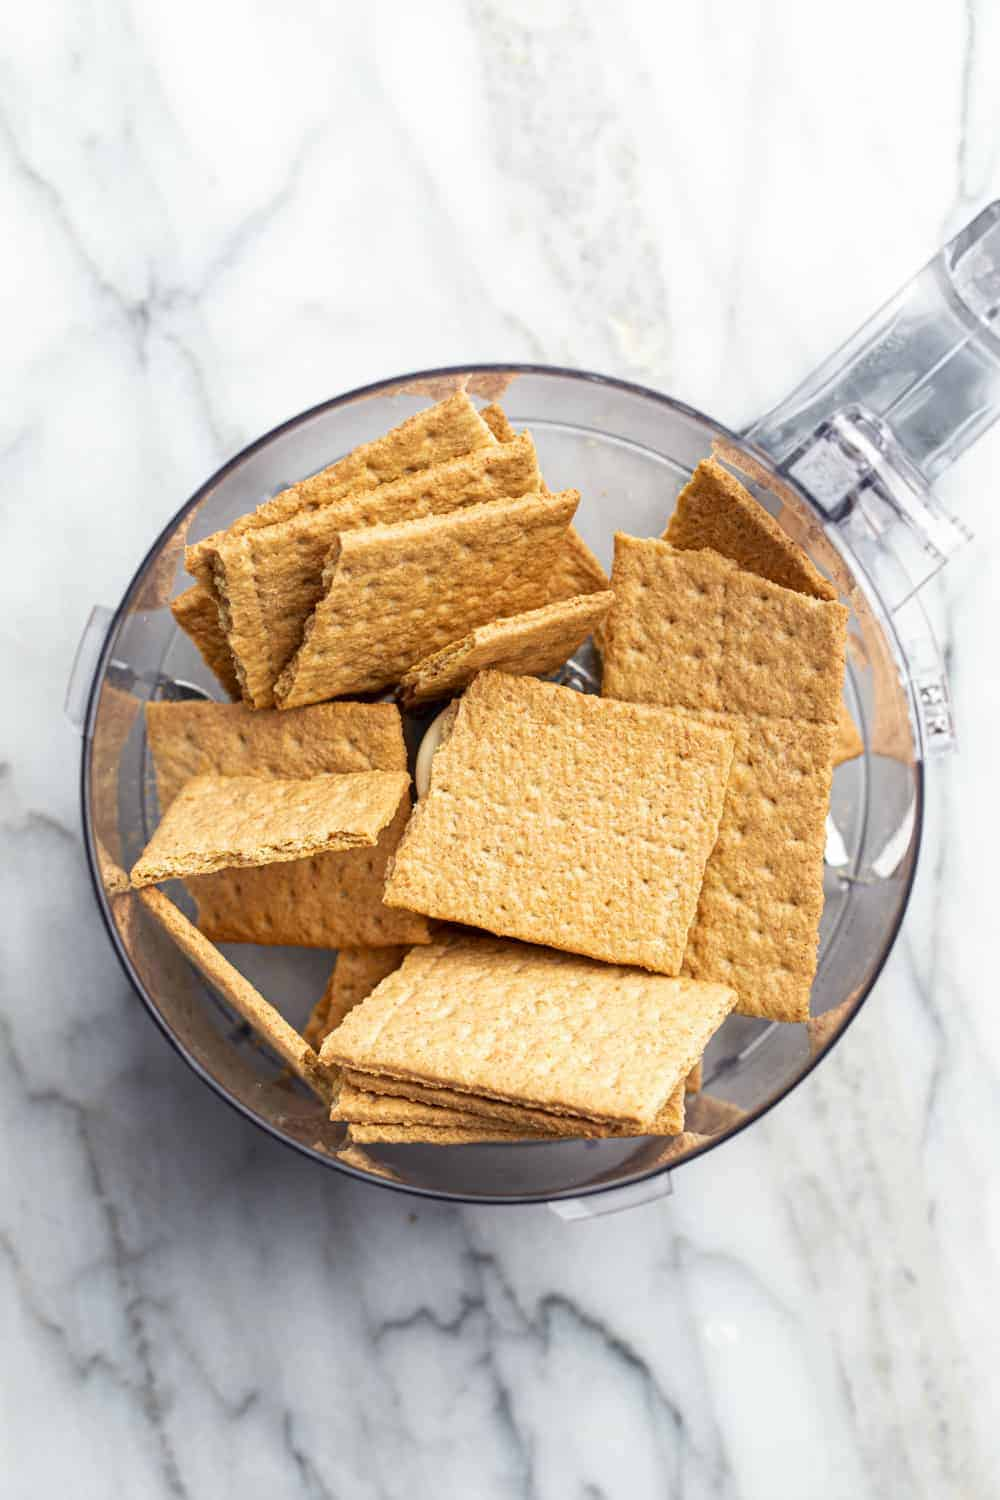 Graham crackers in the bowl of a food processor on a marble surface